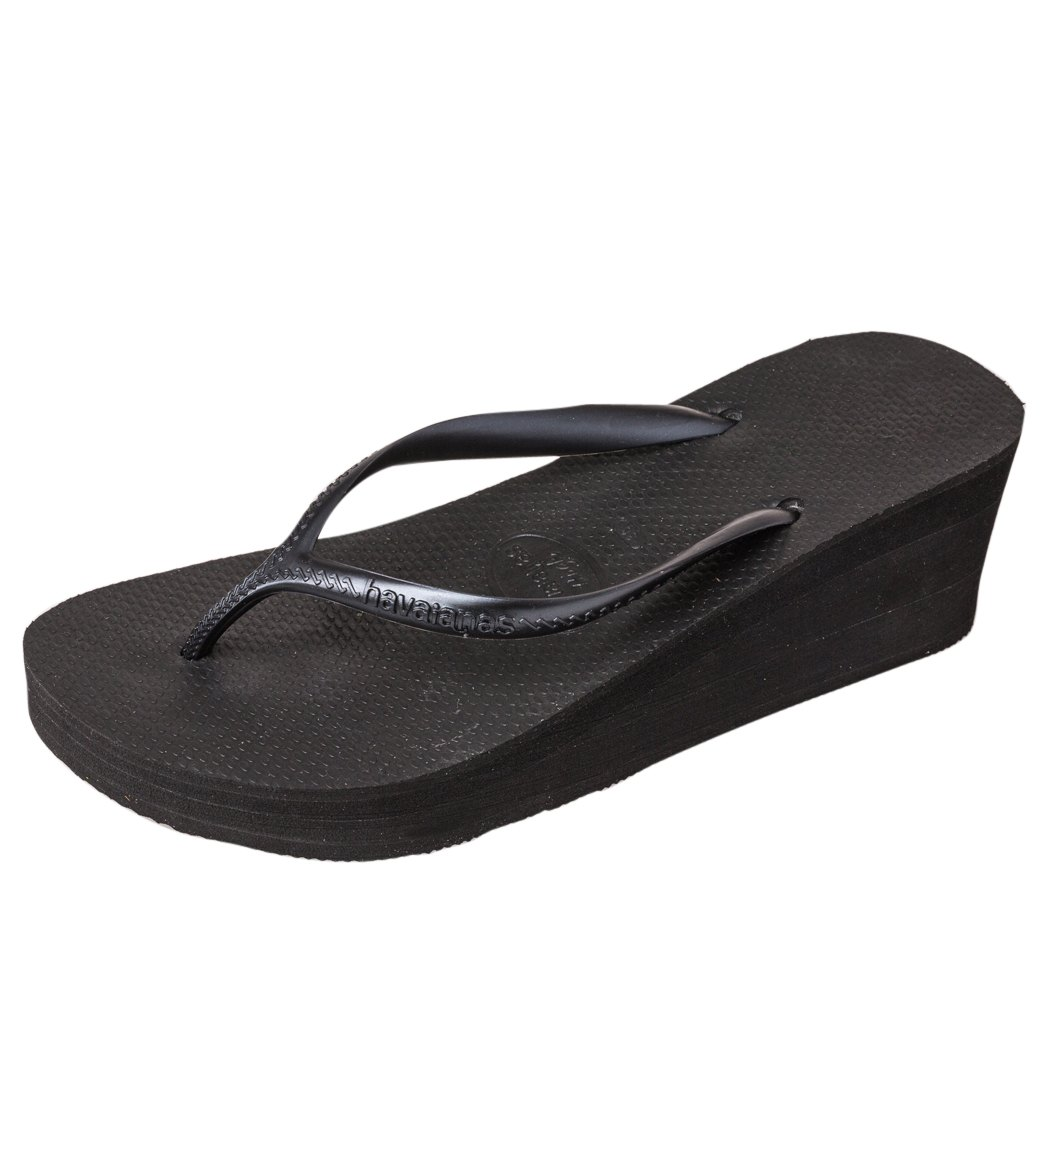 c8533c7d19ad Havaianas Women s High Fashion Wedge Flip Flop at SwimOutlet.com